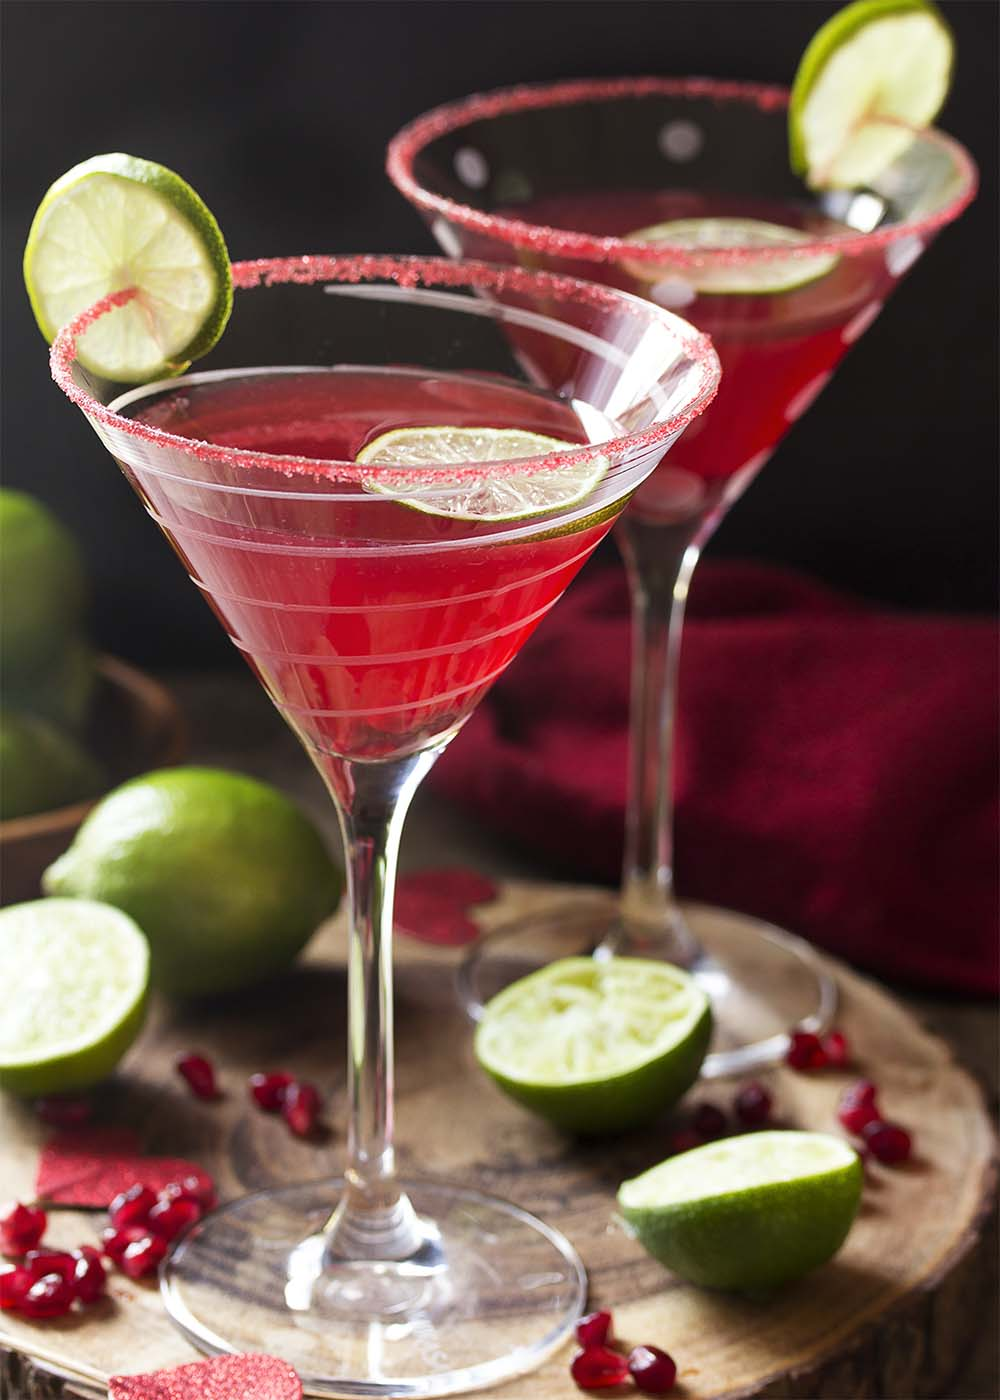 Two glasses of pomegranate martini with limes, pom arils, and red hearts in the picture.